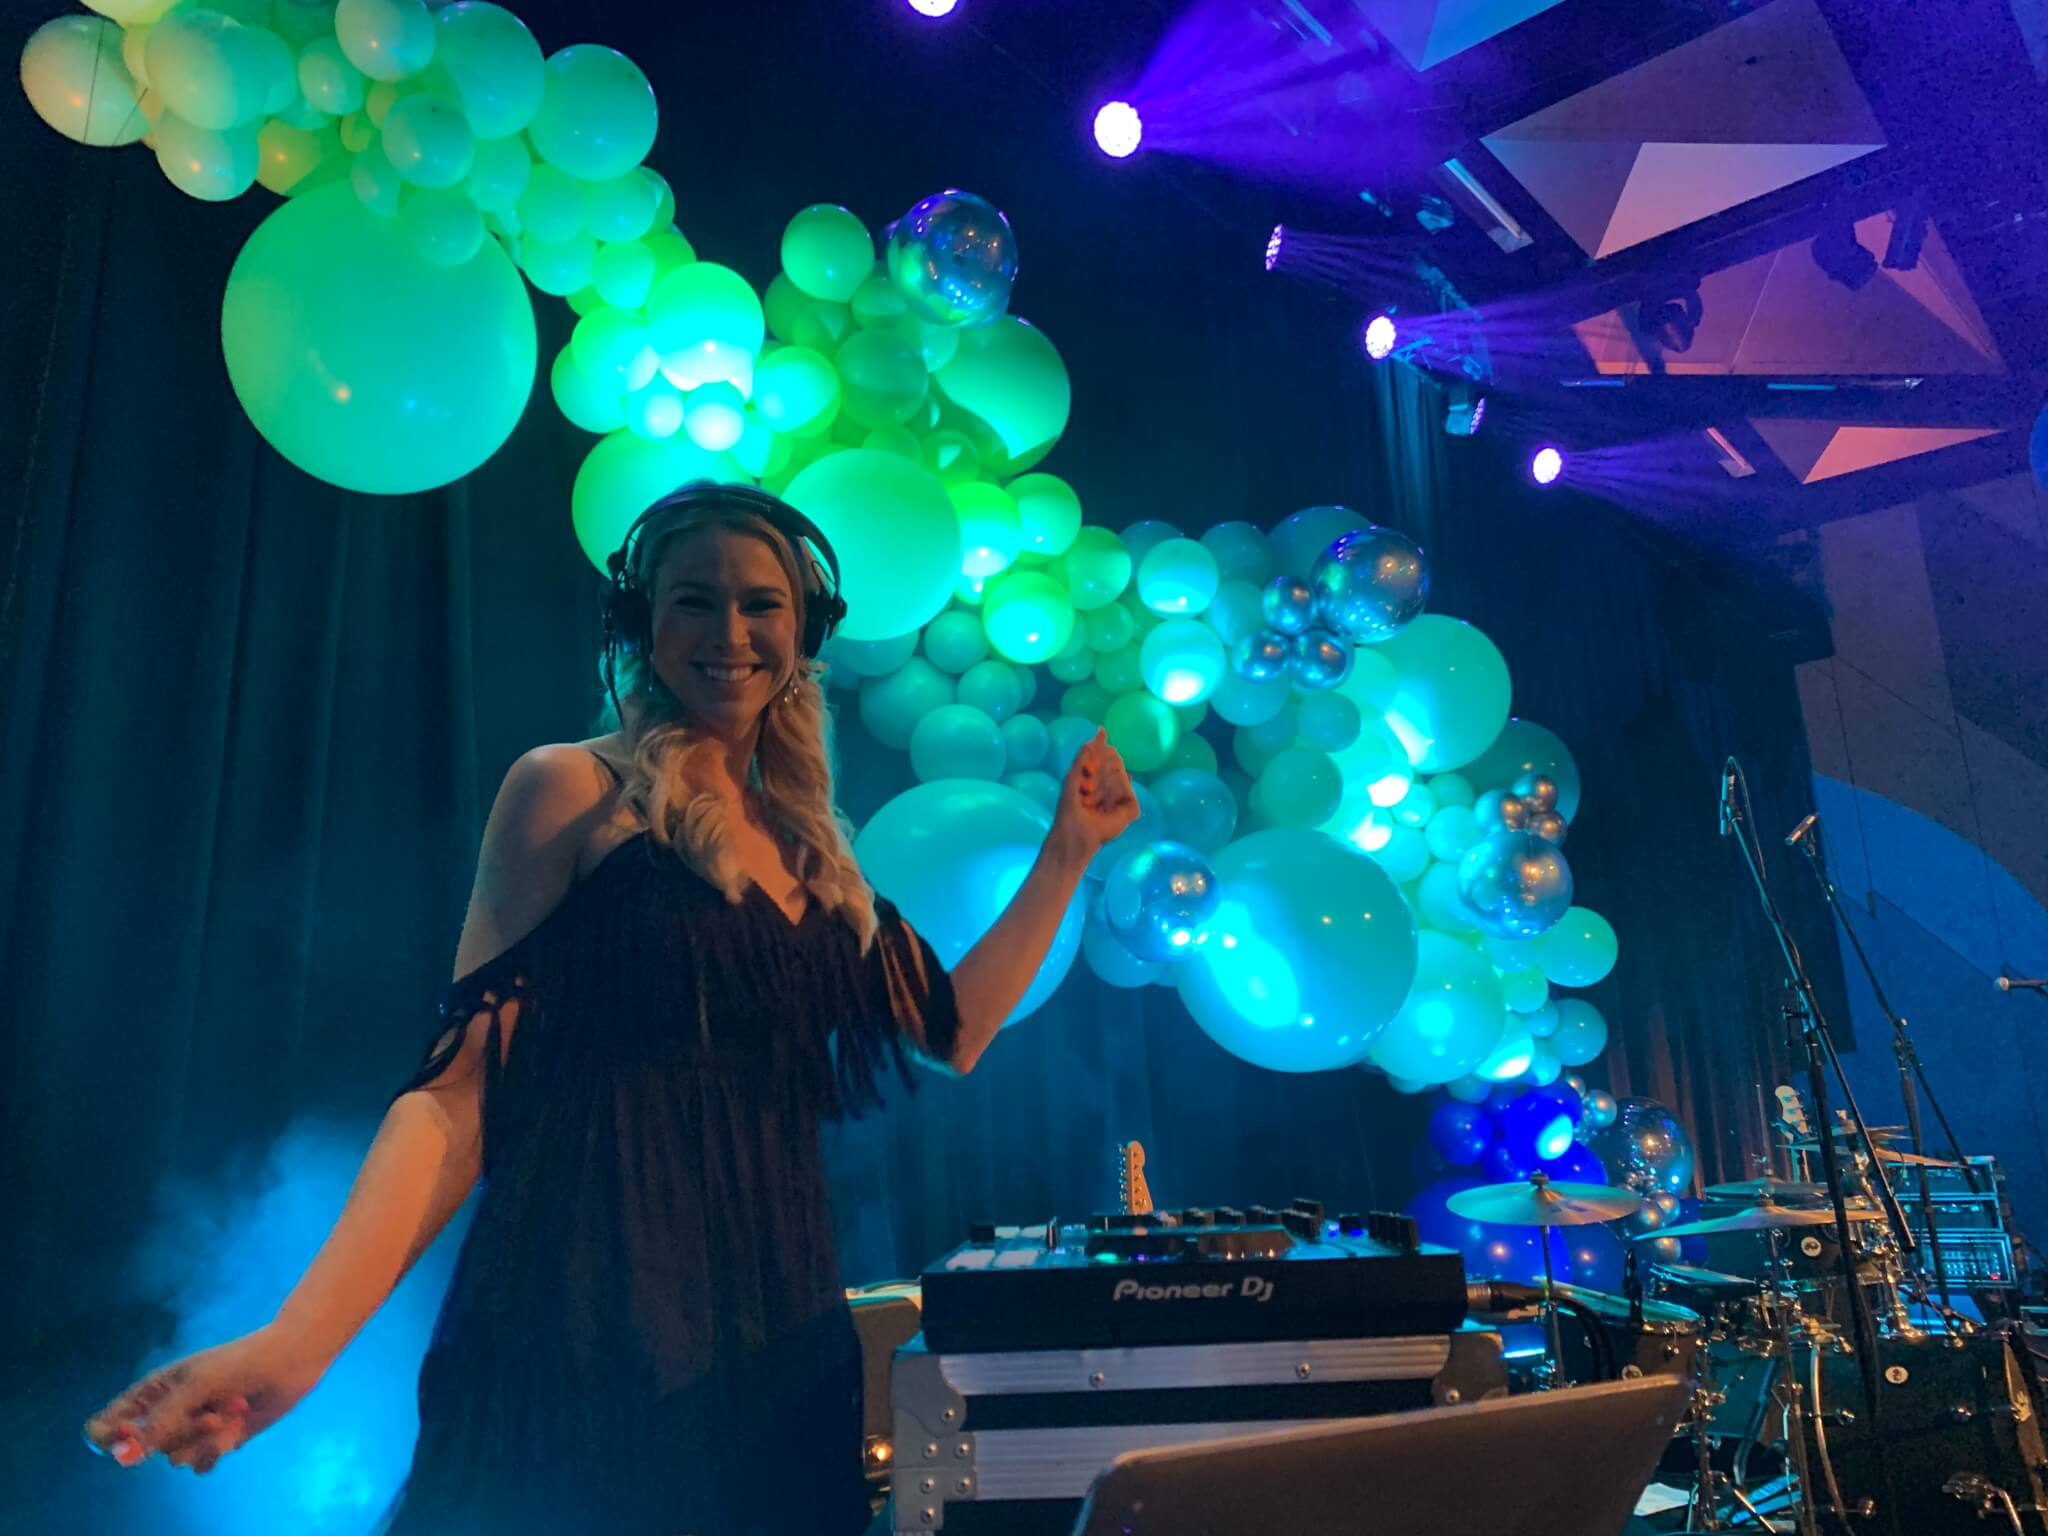 Conference entertainment DJ Emma @ MCEC - Melbourne Convention & Exhibition Centre